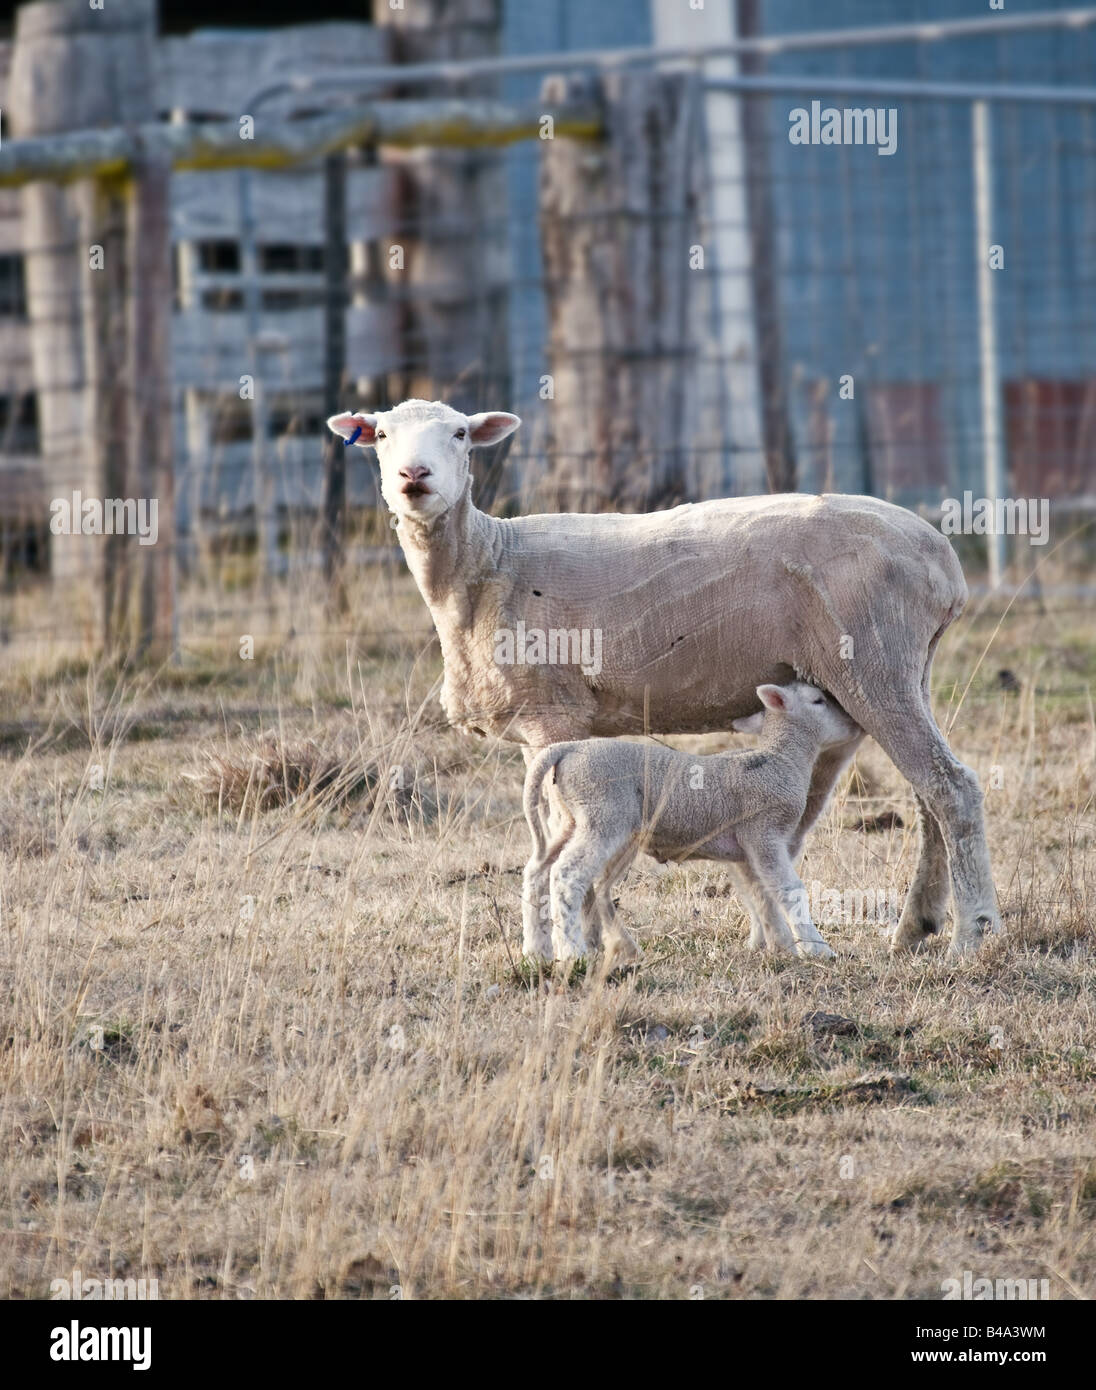 a young lamb getting a drink from its mother - Stock Image